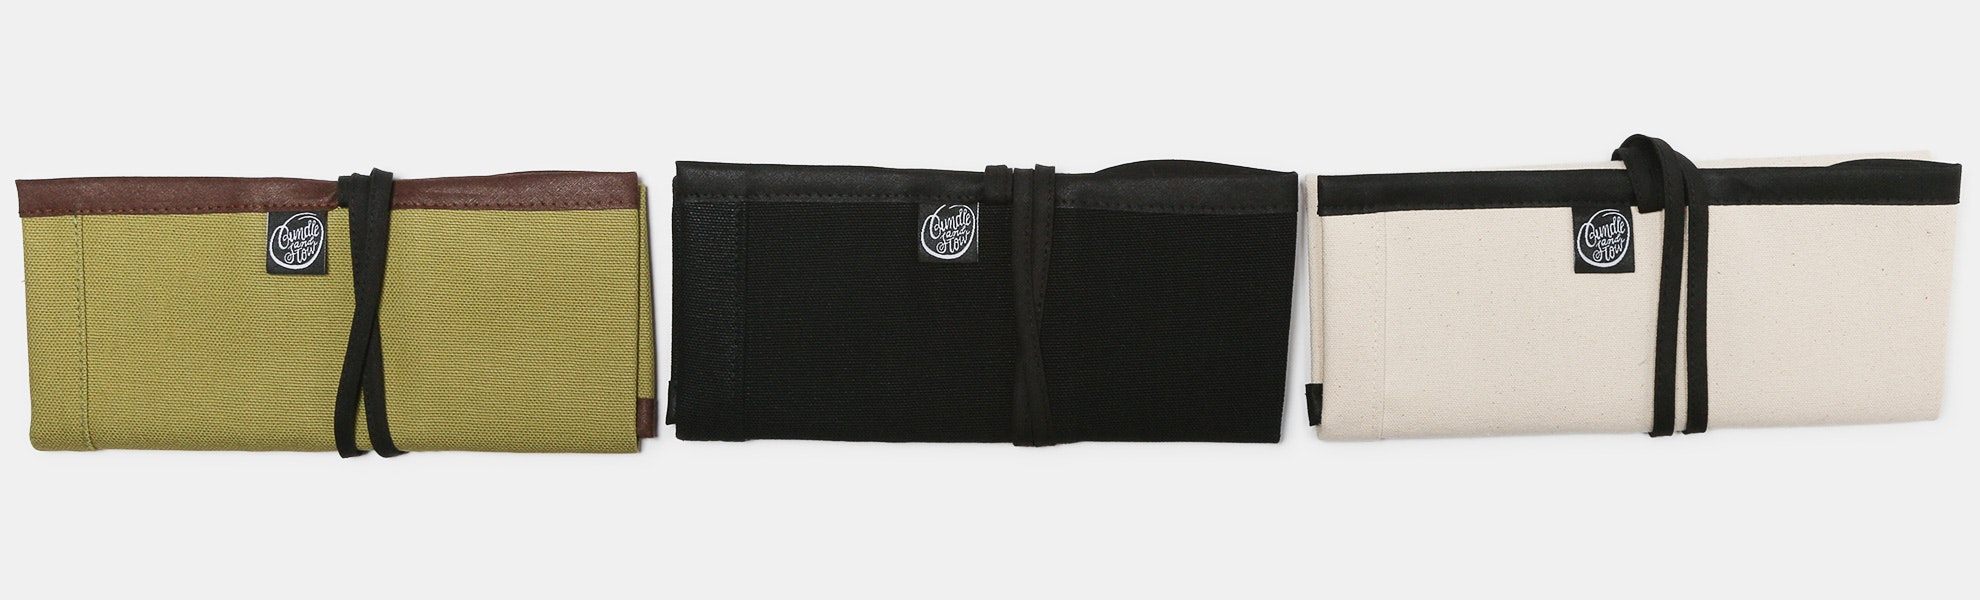 Bundle and Stow Medium Organizer Roll-Up